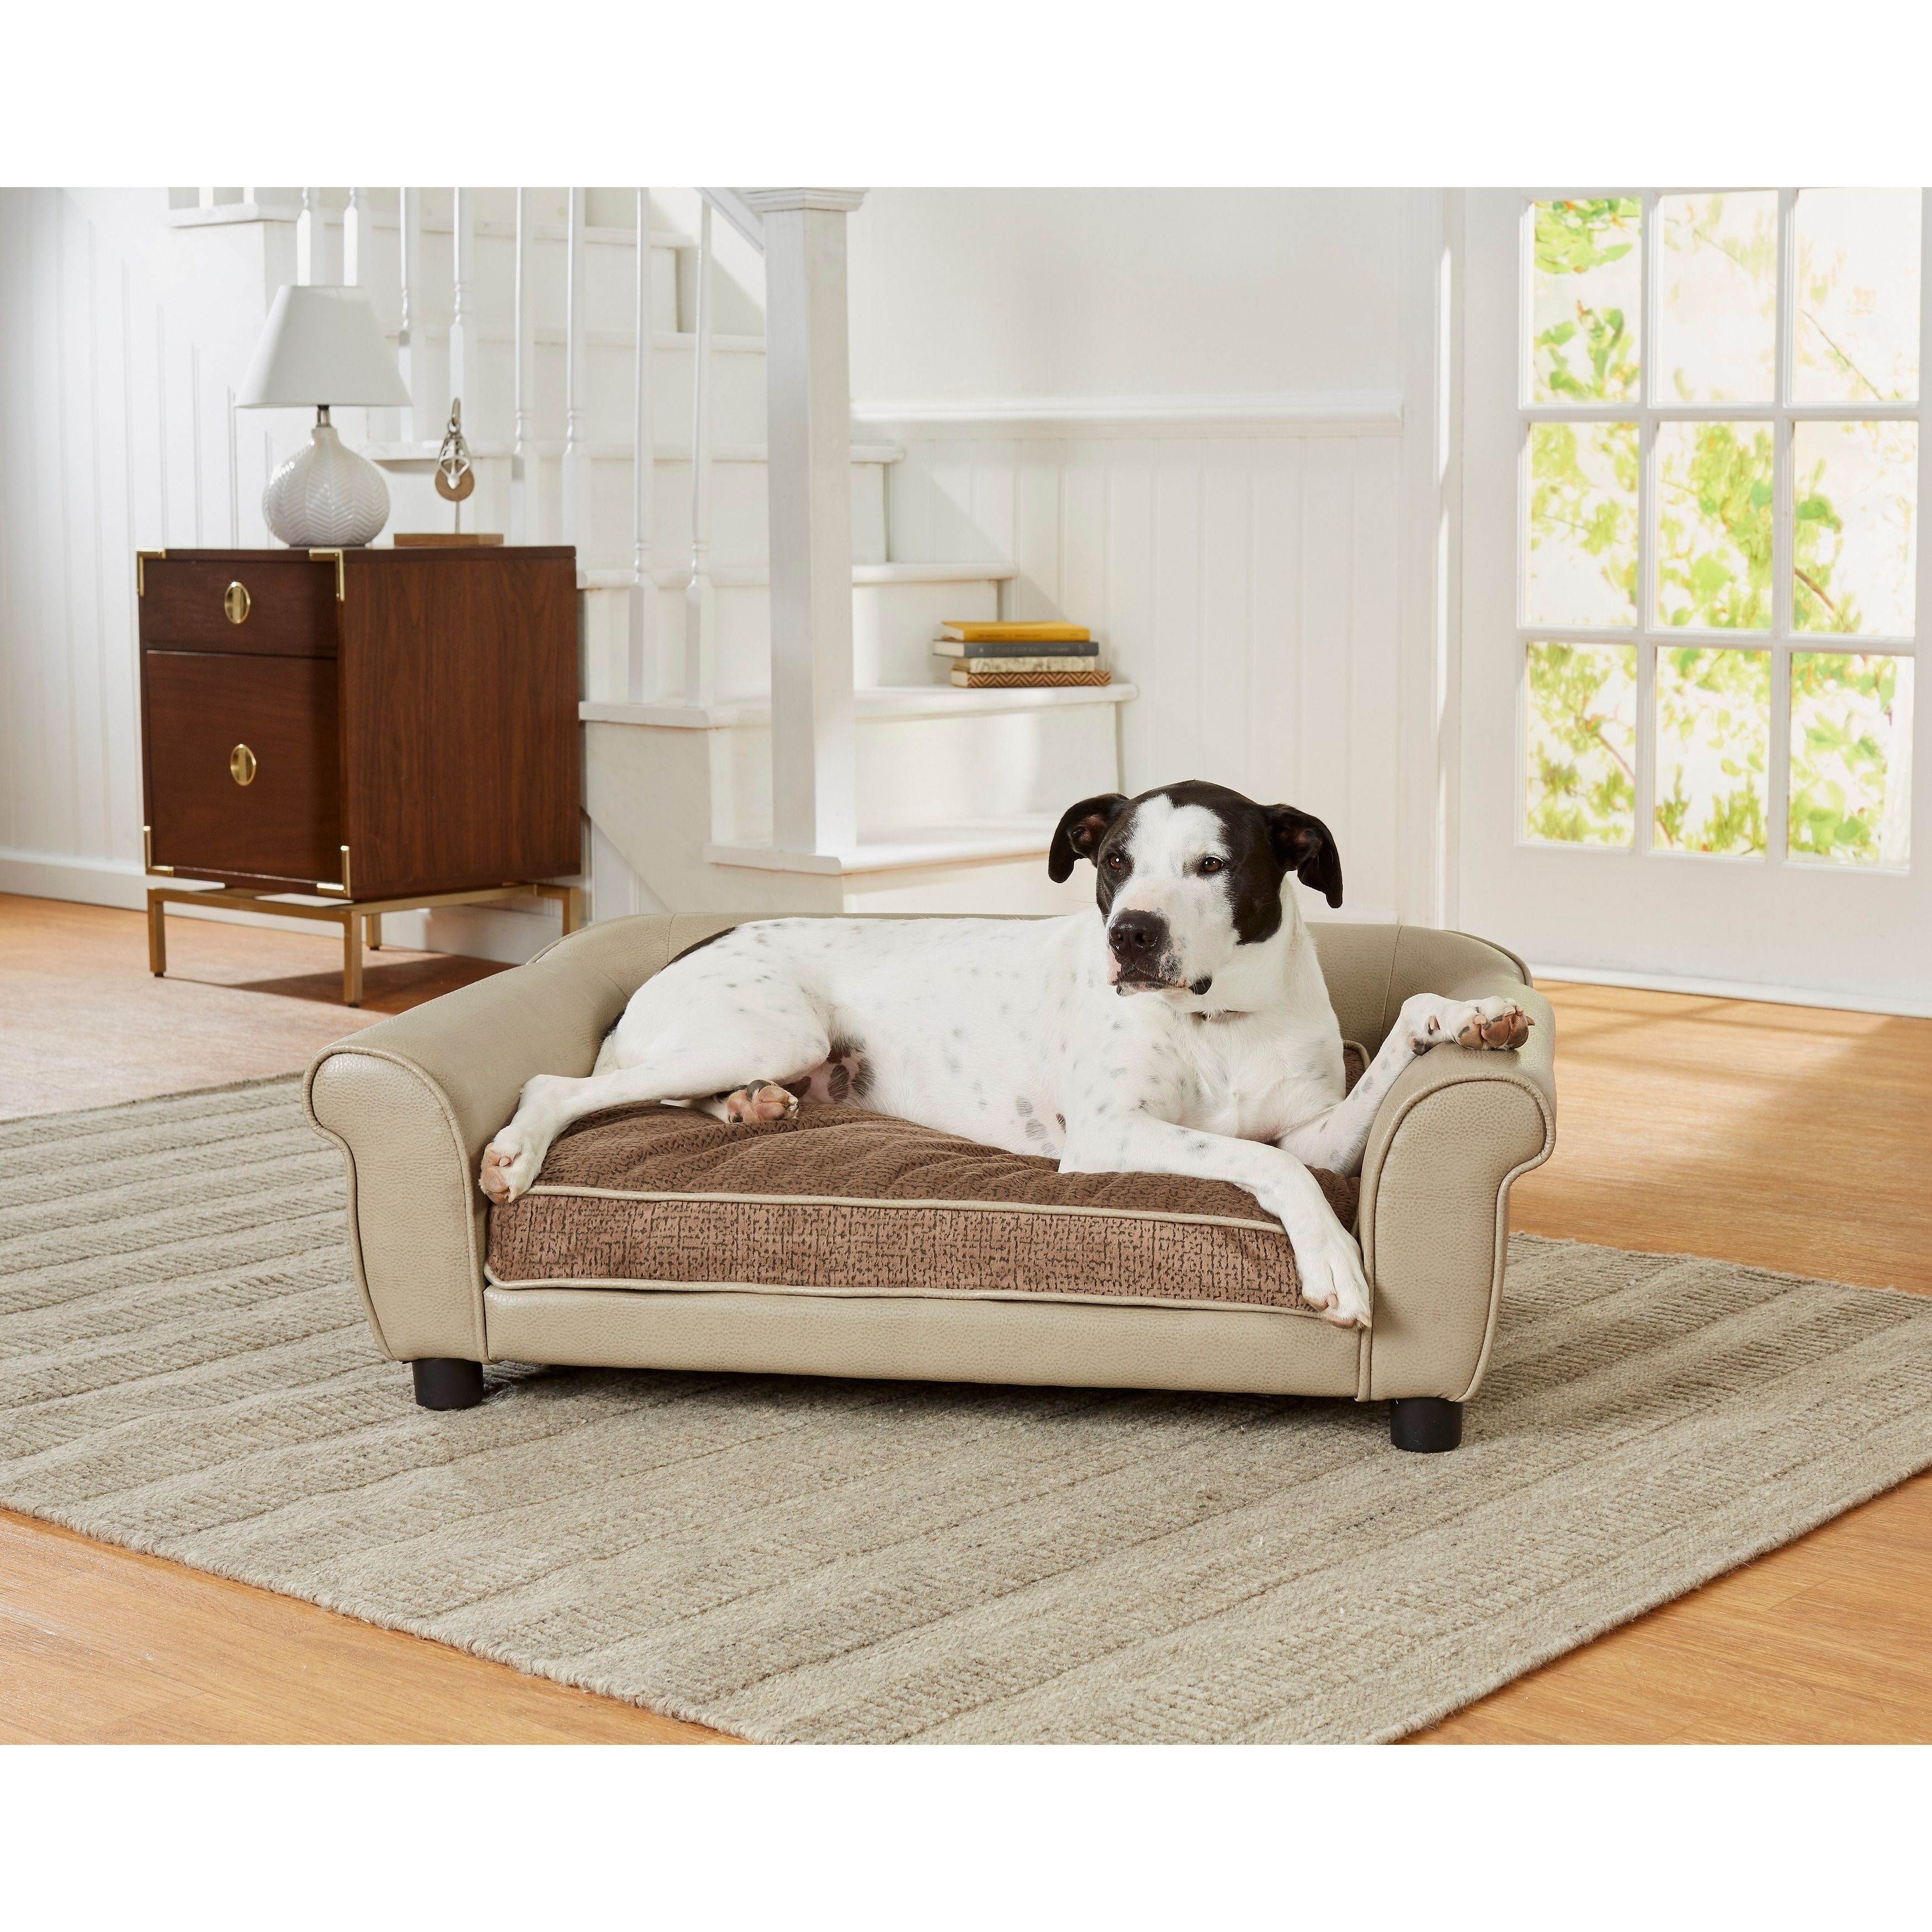 Online Shopping Bedding Furniture Electronics Jewelry Clothing More Dog Sofa Bed Dog Couch Dog Bed